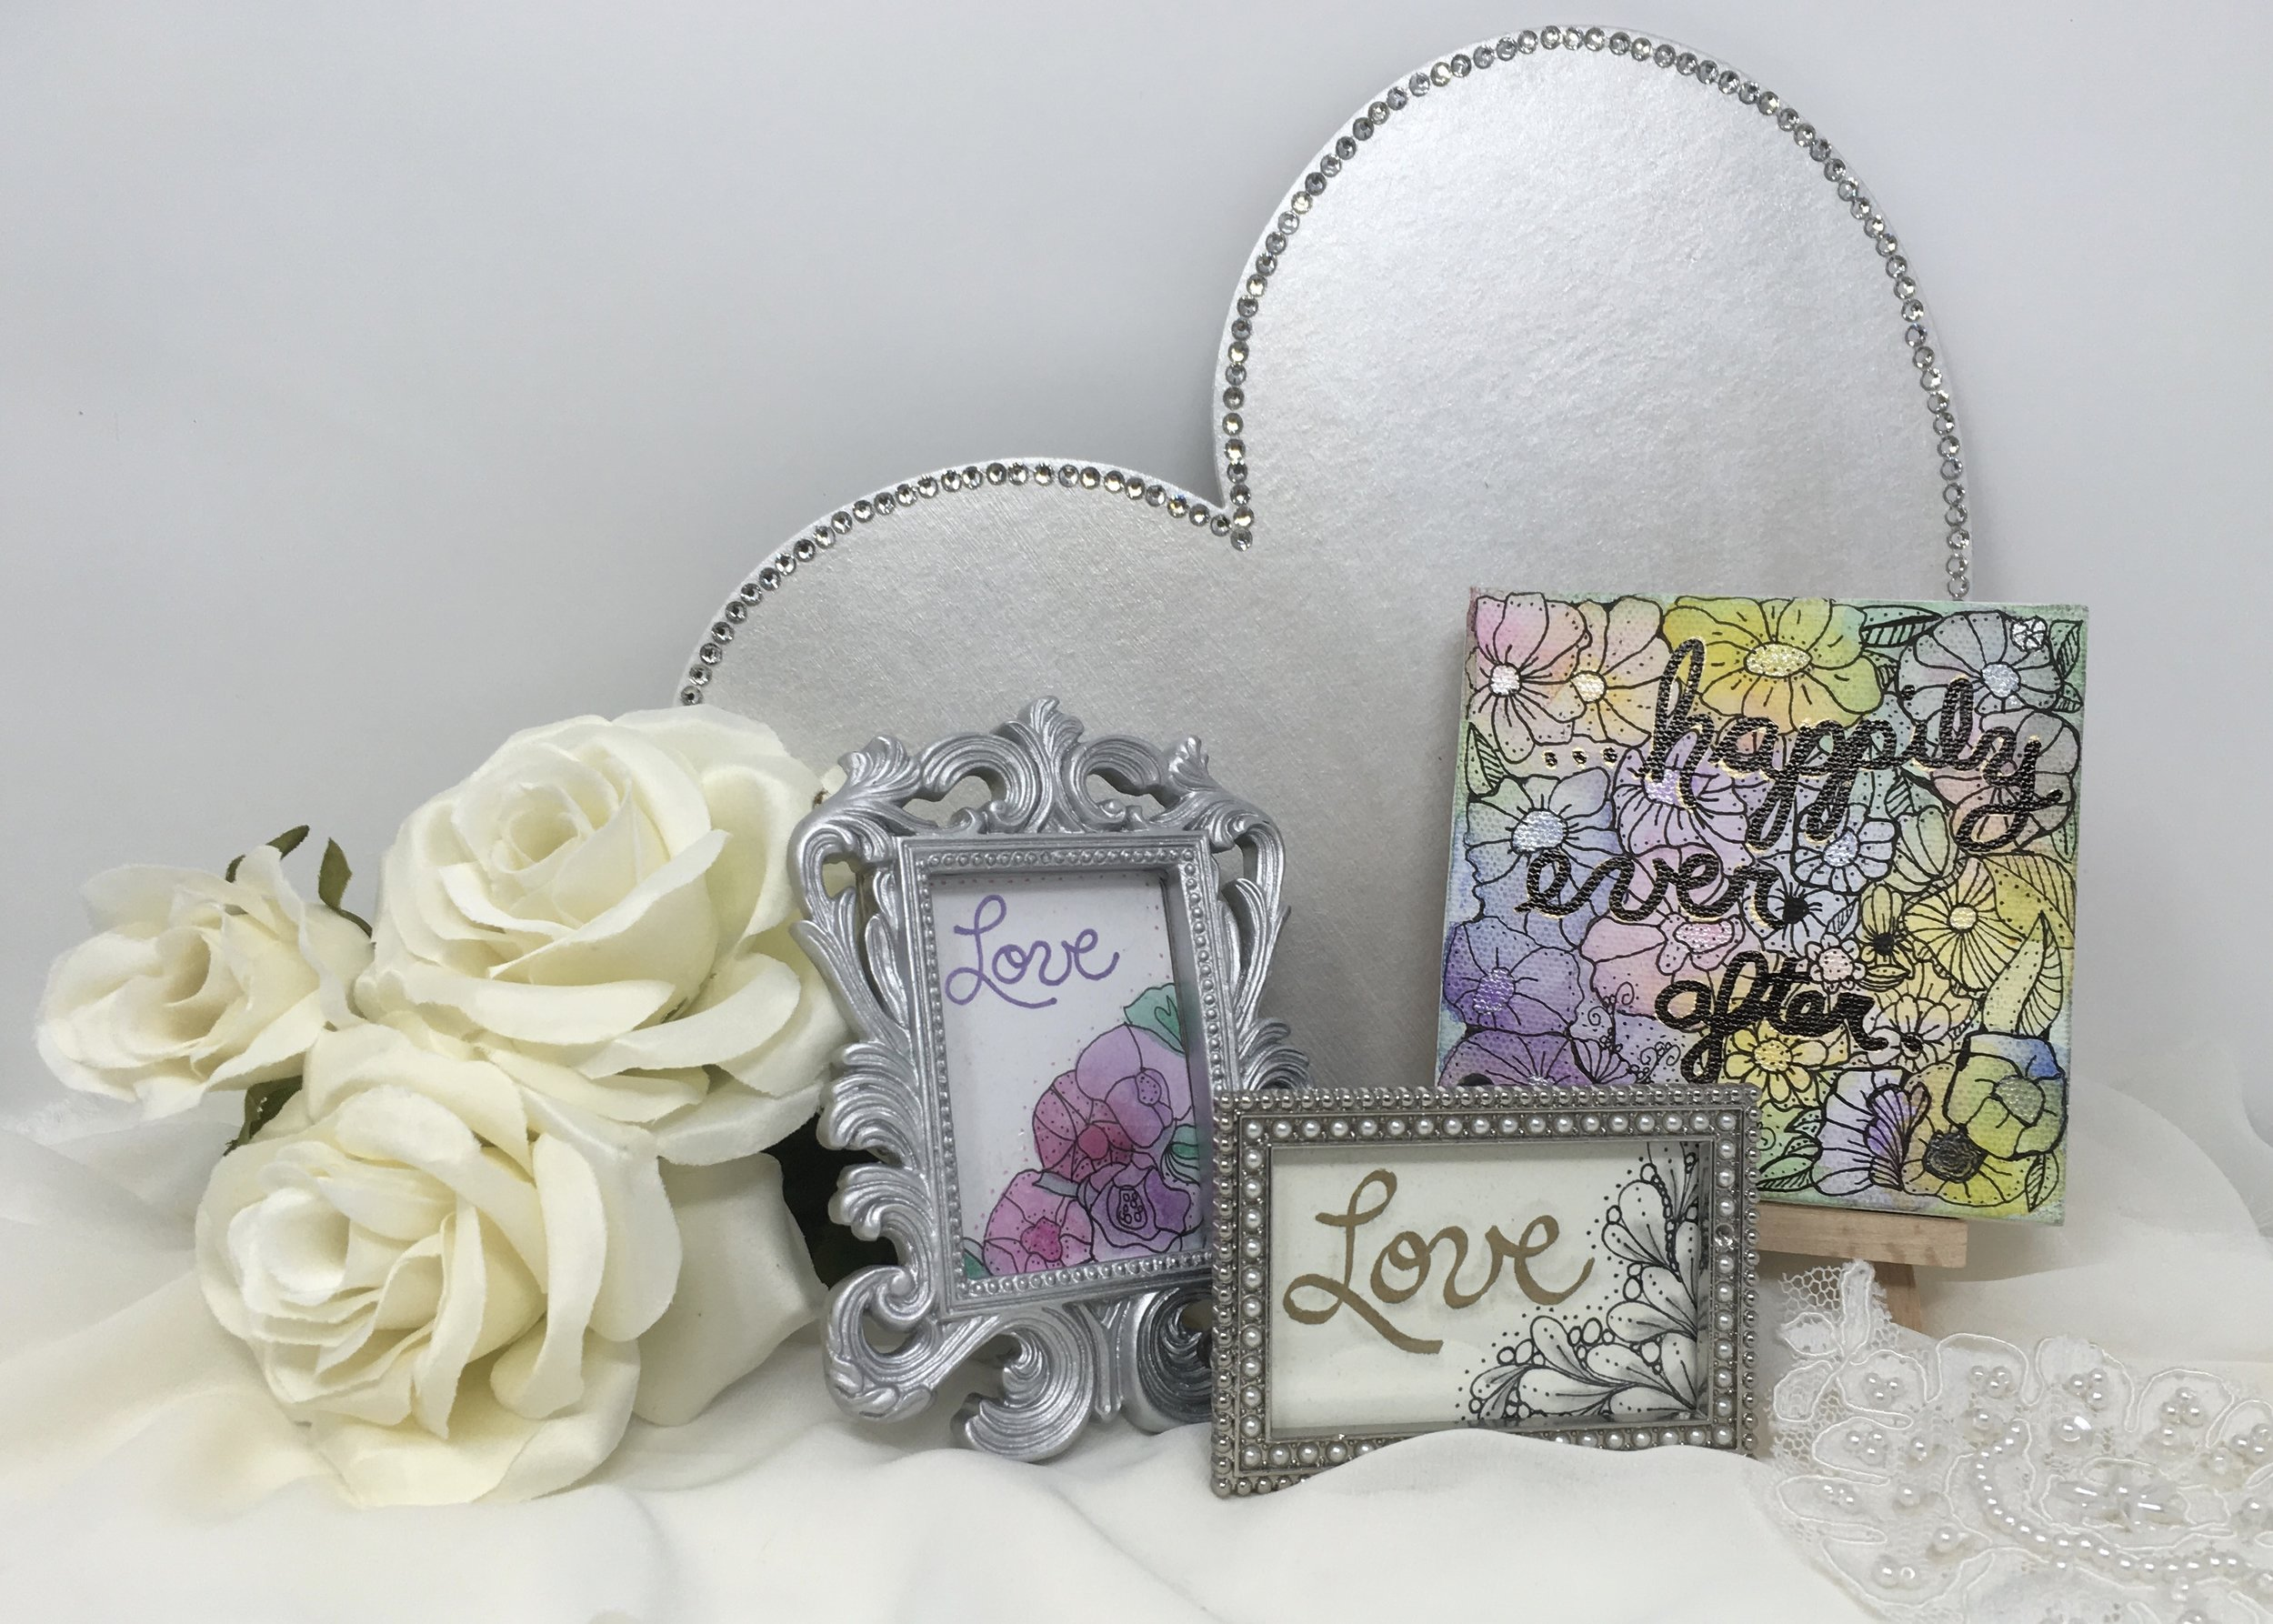 Mini-Monets! - Create small art pieces using a variety of paints and markers! Choose from mini canvases, mini-framed art, cards, ornaments, and magnets!